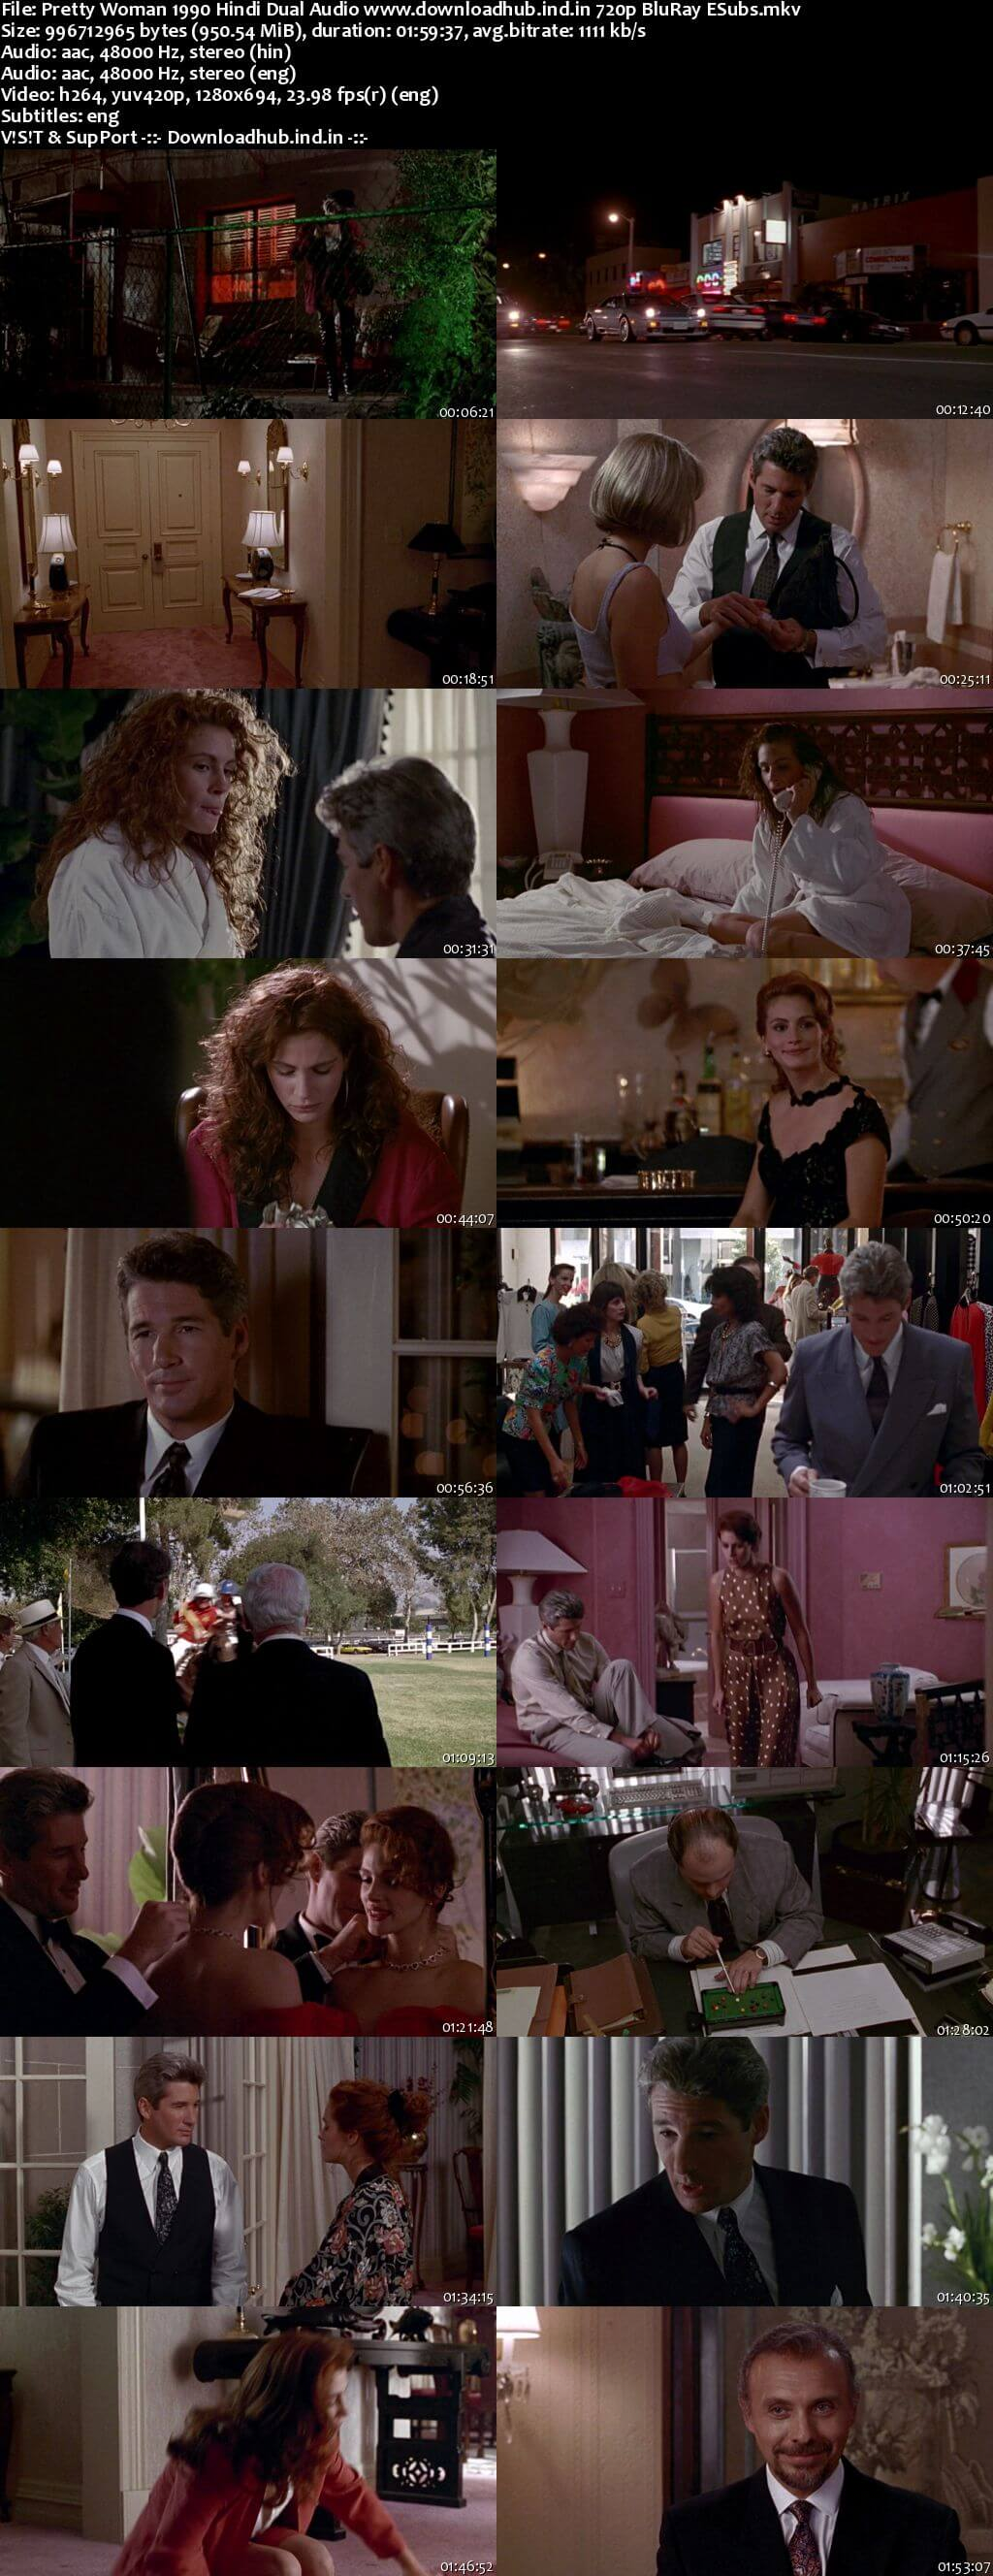 Pretty Woman 1990 Hindi Dual Audio 720p BluRay ESubs